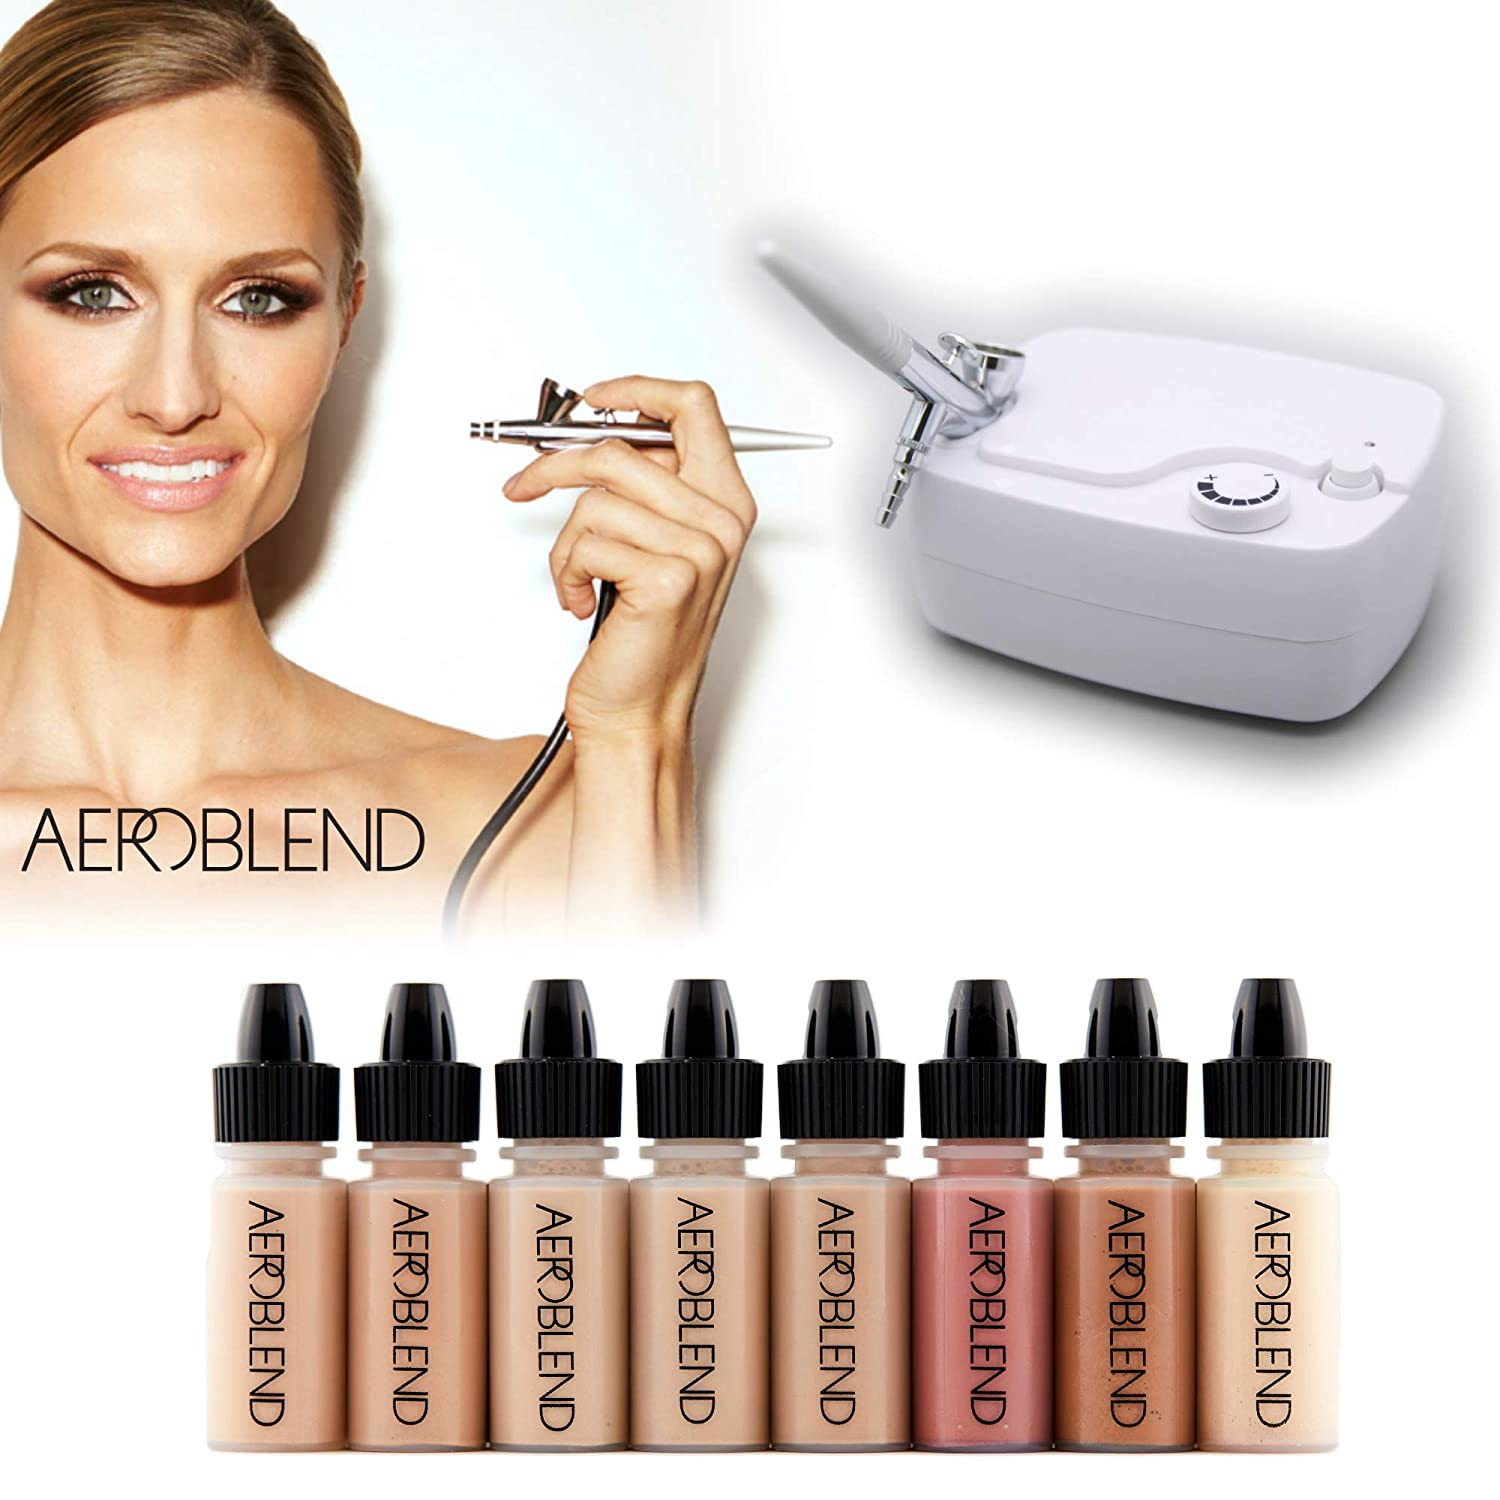 Best Airbrush Makeup Kit 7